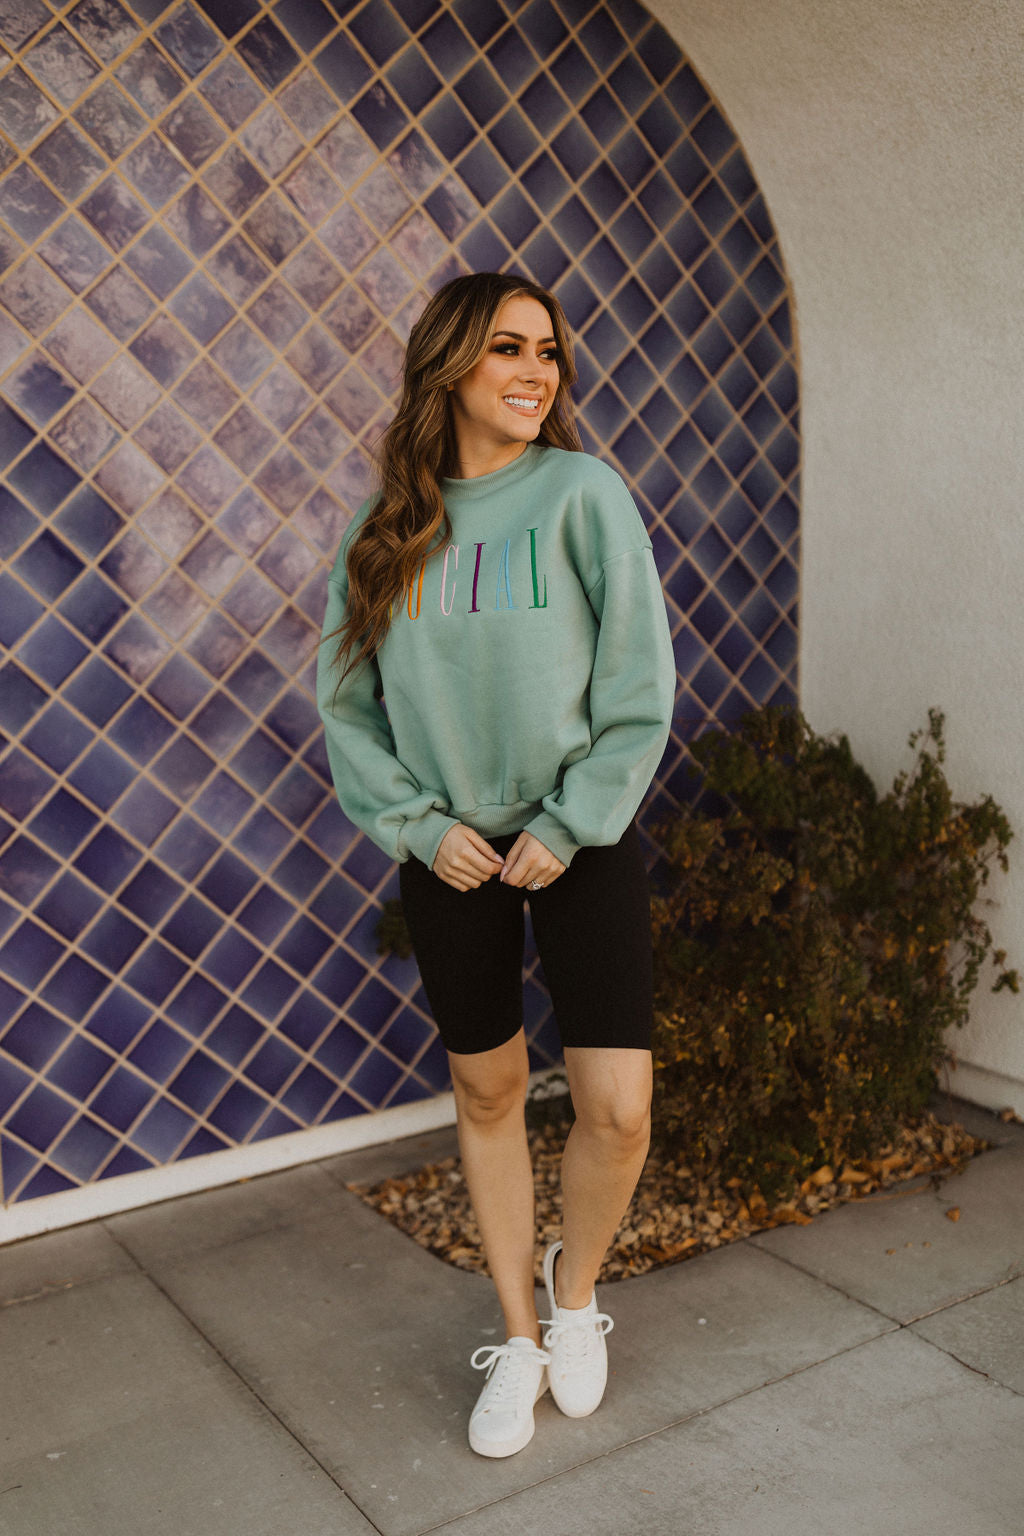 THE SOCIAL GRAPHIC SWEATSHIRT IN SAGE